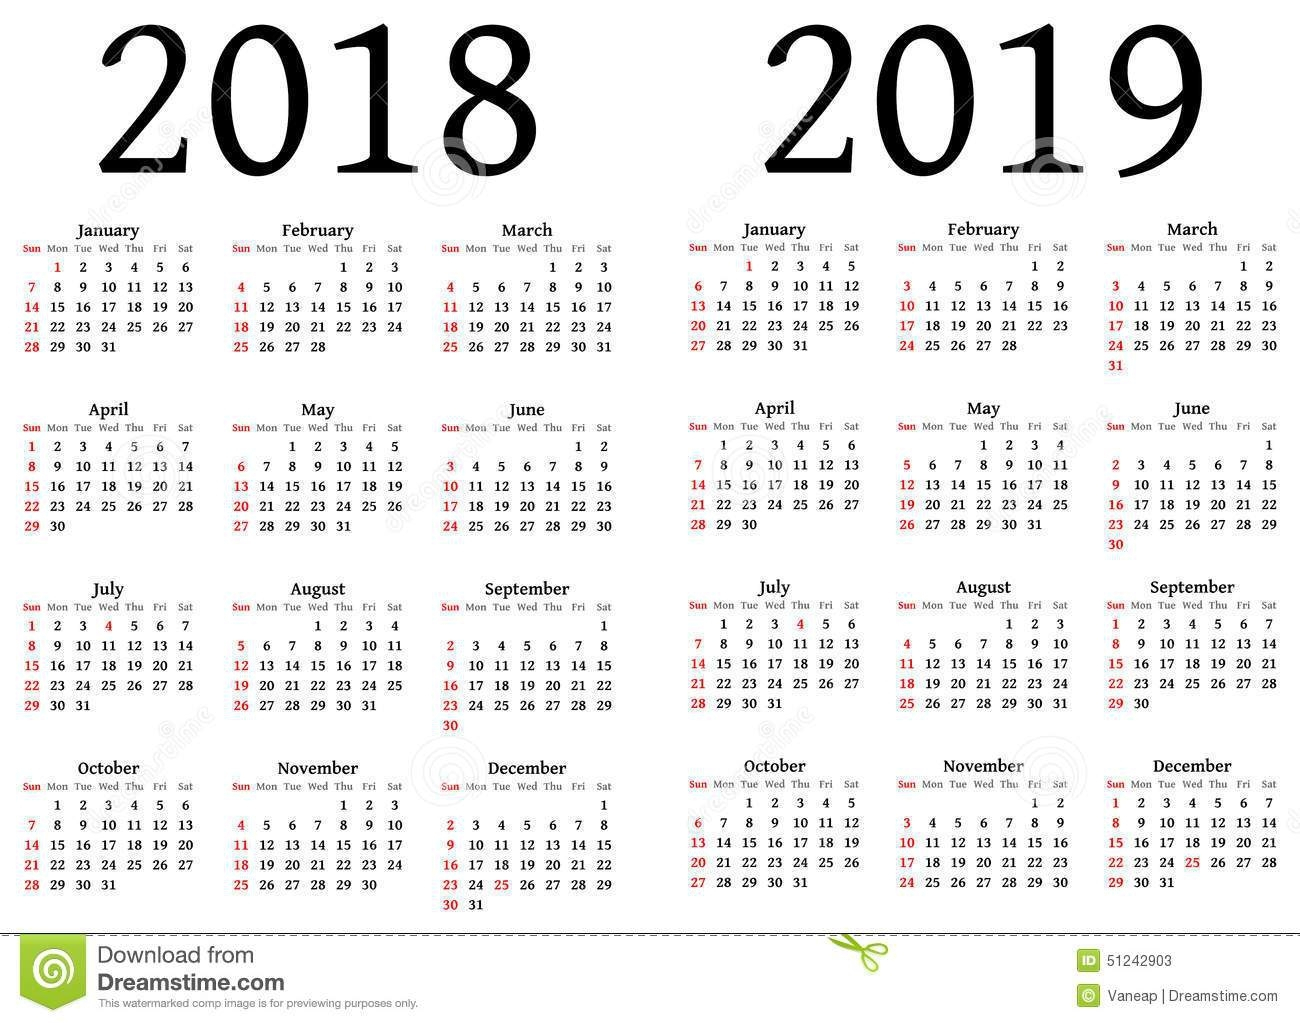 Julian Calendar – Printable Year Calendar for Printable Julian Date Calendar